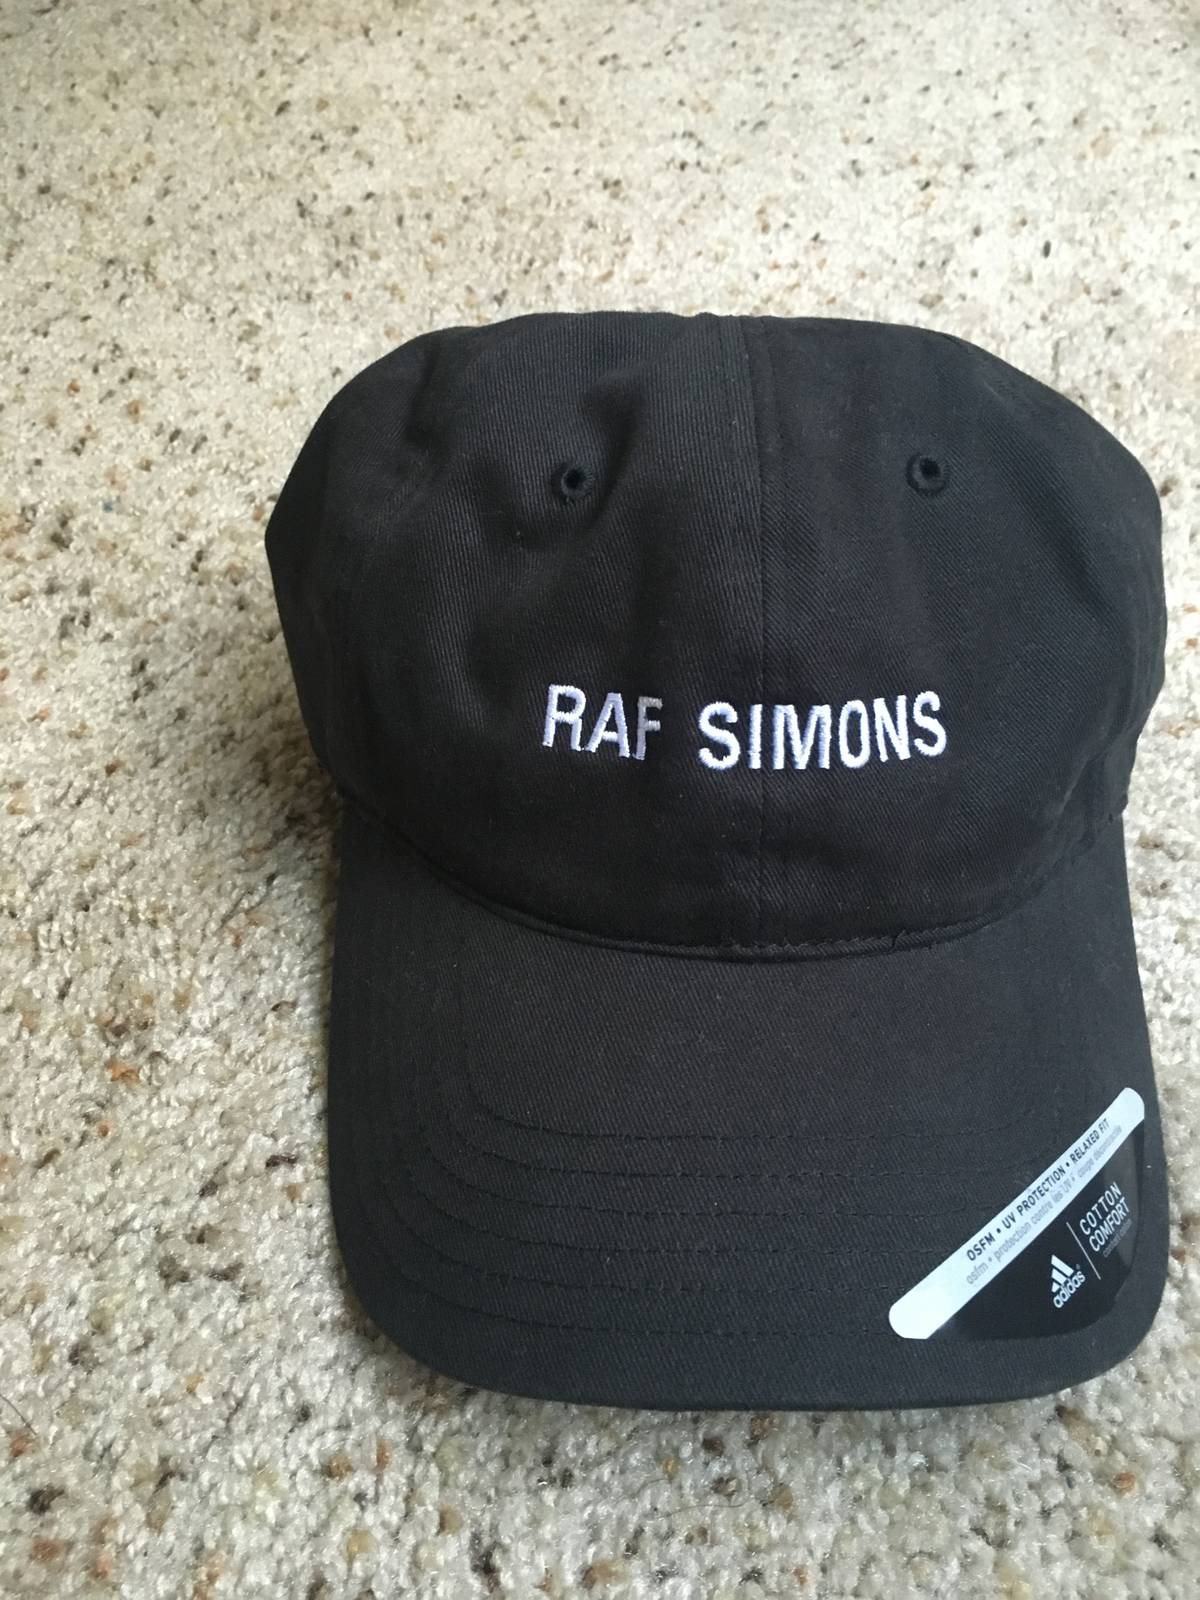 eadbe22e48742 Adidas Raf Simons Hat Size One Hats Grailed